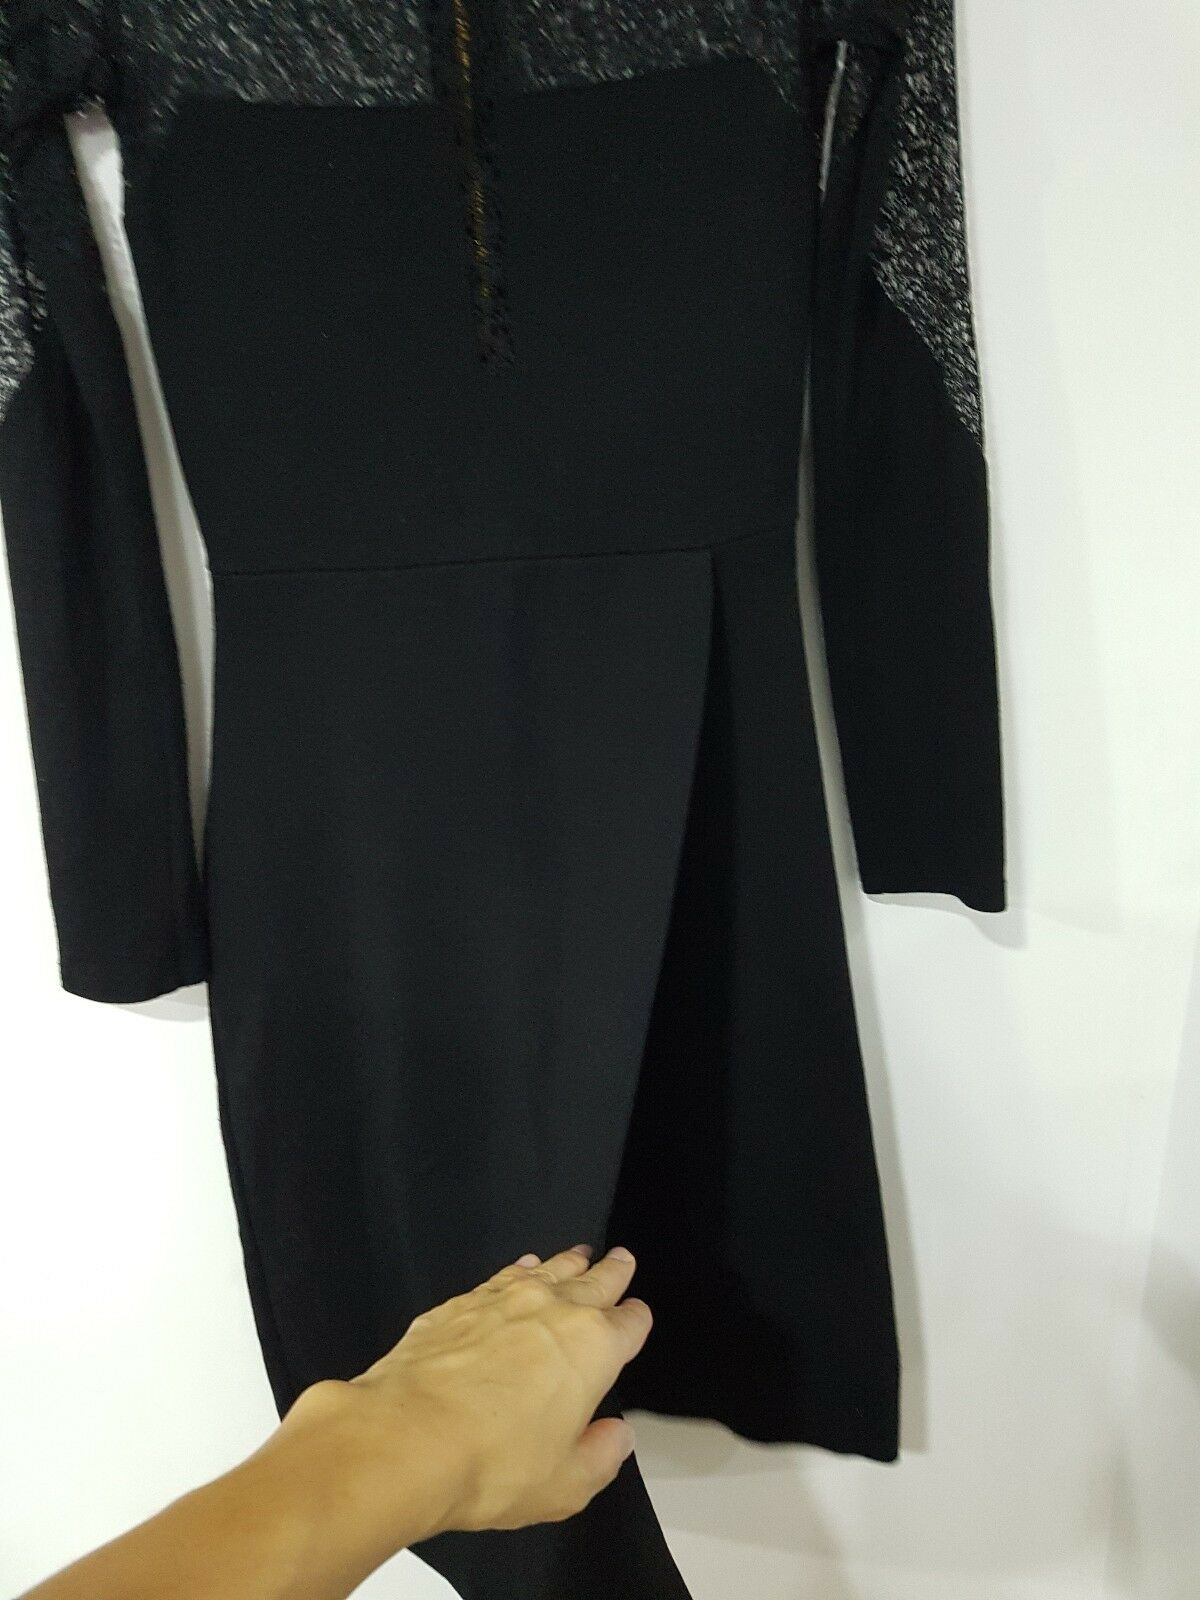 French Connection stunning lace detail long sleeve dress dress dress size e45bb0